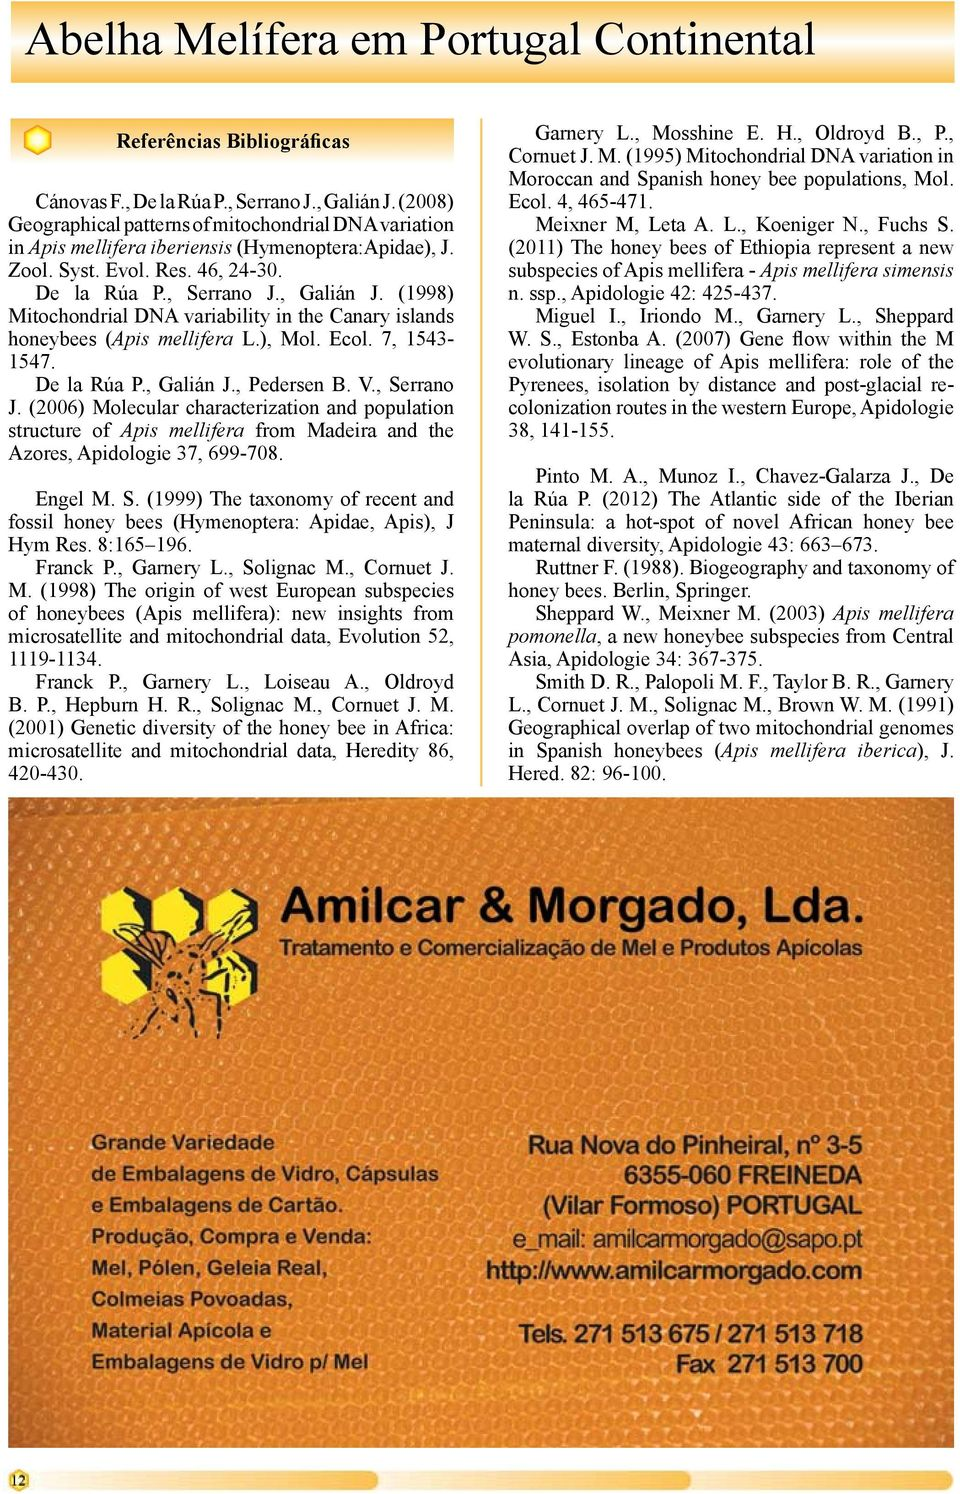 V., Serrano J. (2006) Molecular characterization and population structure of Apis mellifera from Madeira and the Azores, Apidologie 37, 699-708. Engel M. S. (1999) The taxonomy of recent and fossil honey bees (Hymenoptera: Apidae, Apis), J Hym Res.